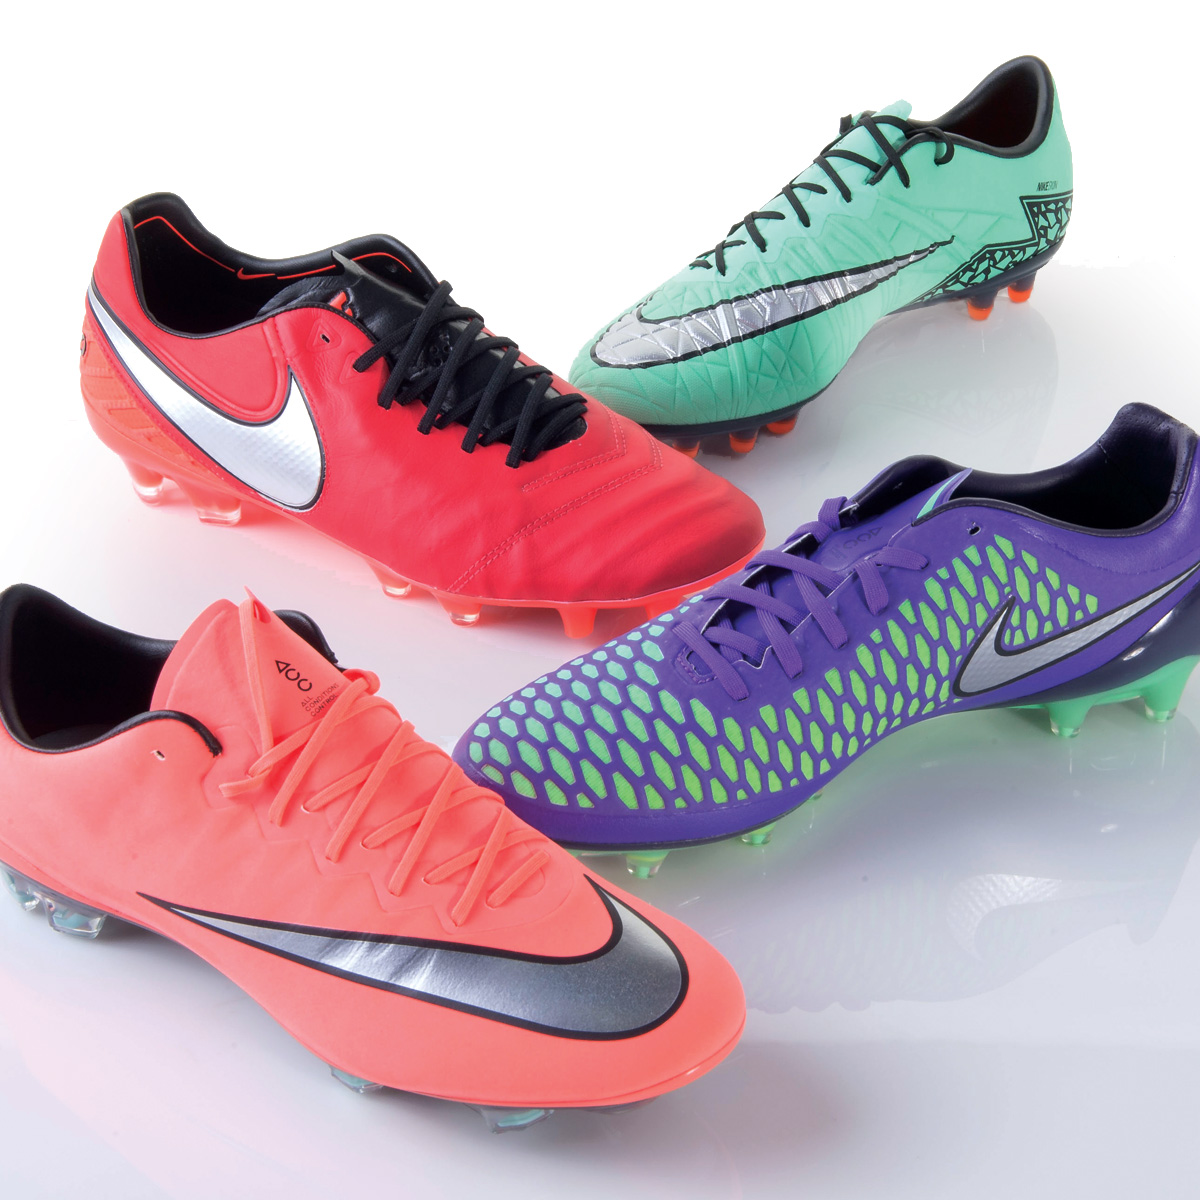 bc417d6a03f New Colors, Same Speed: Nike 'Liquid Shift' Pack | Eastbay Blog ...